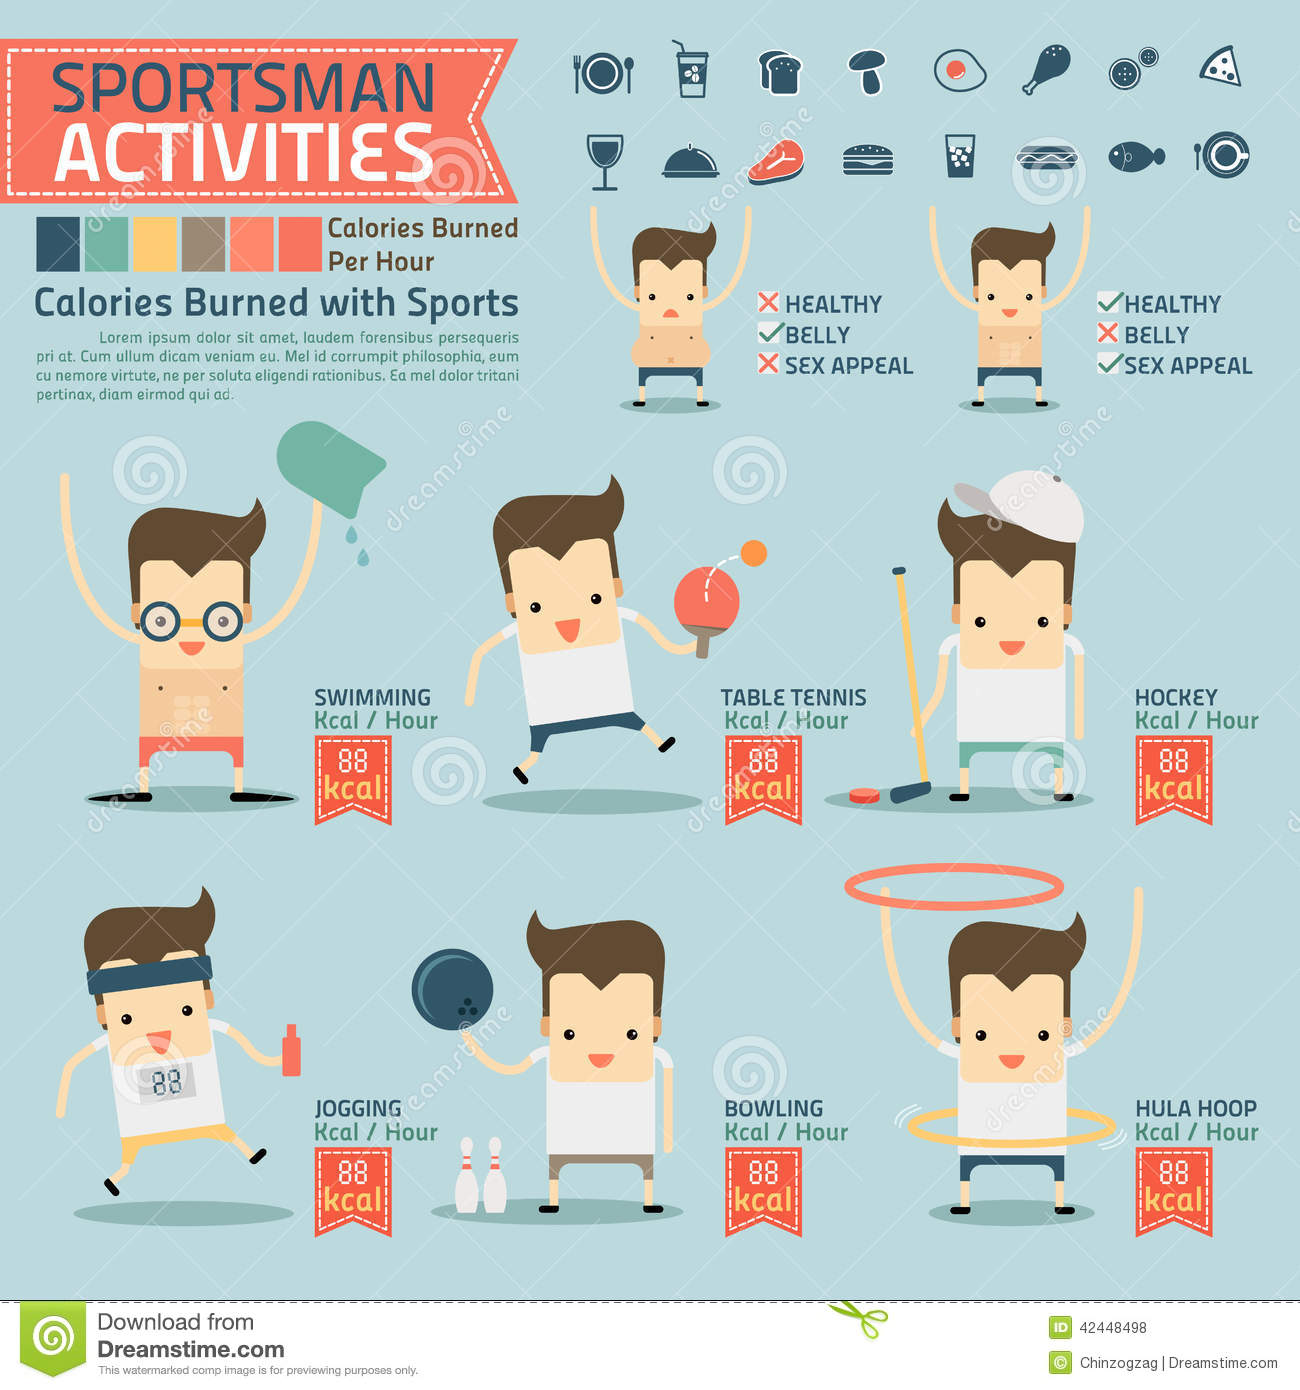 Sportsman Activities And Calories Burned Infographics With